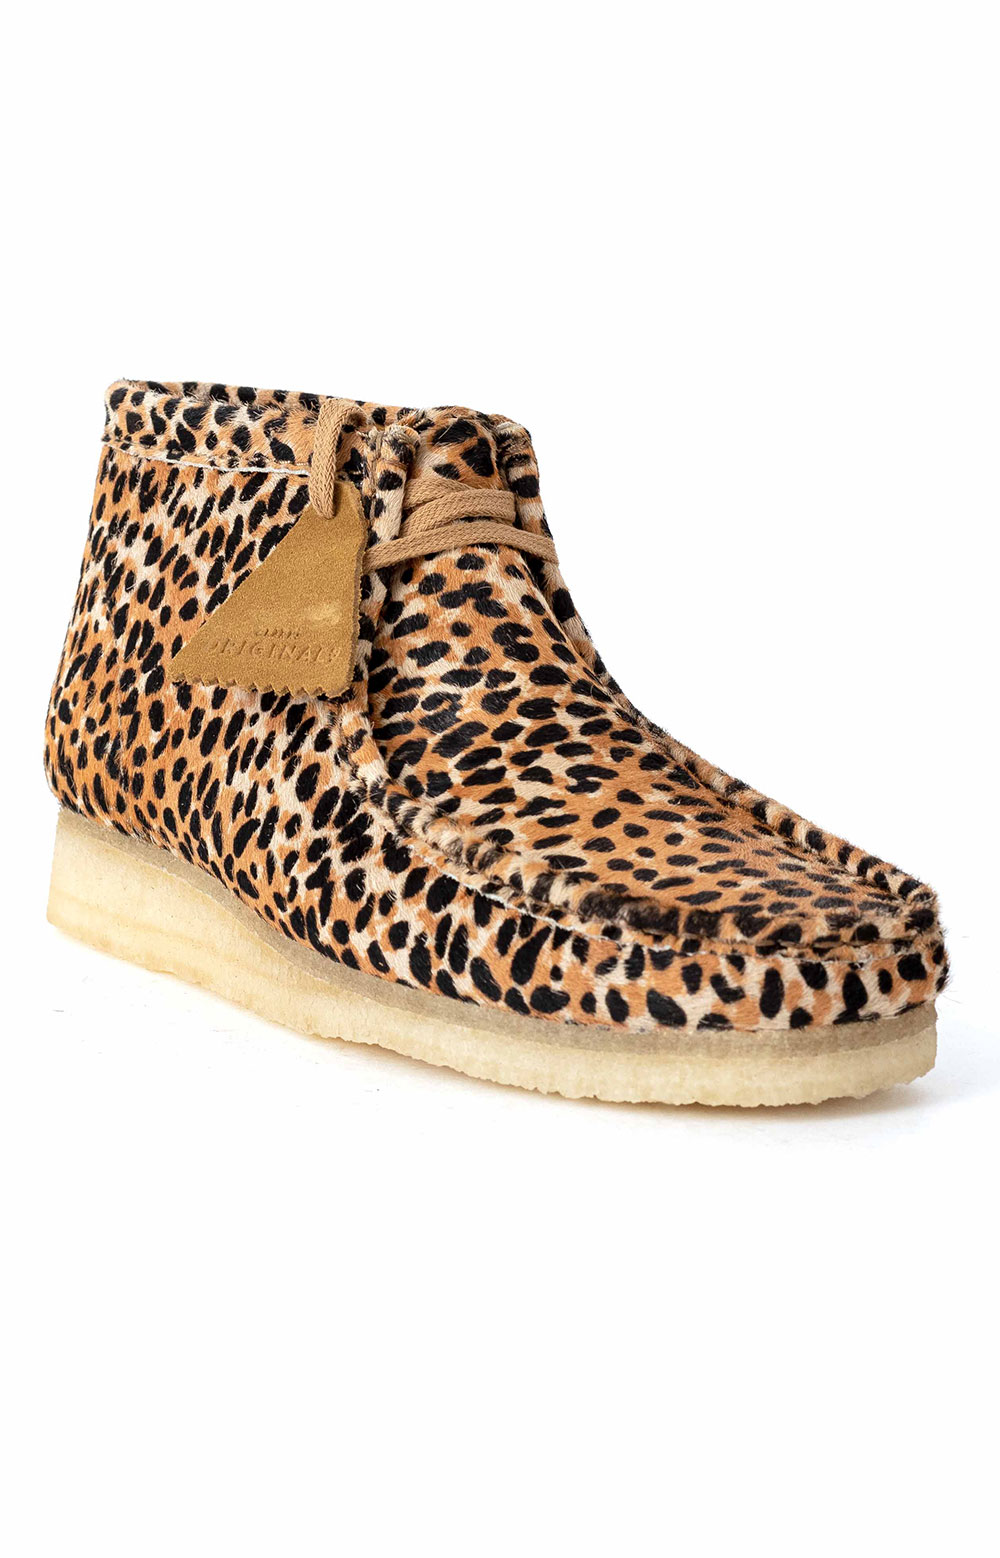 (26146756) Wallabee Boot - Brown Animal Print 3